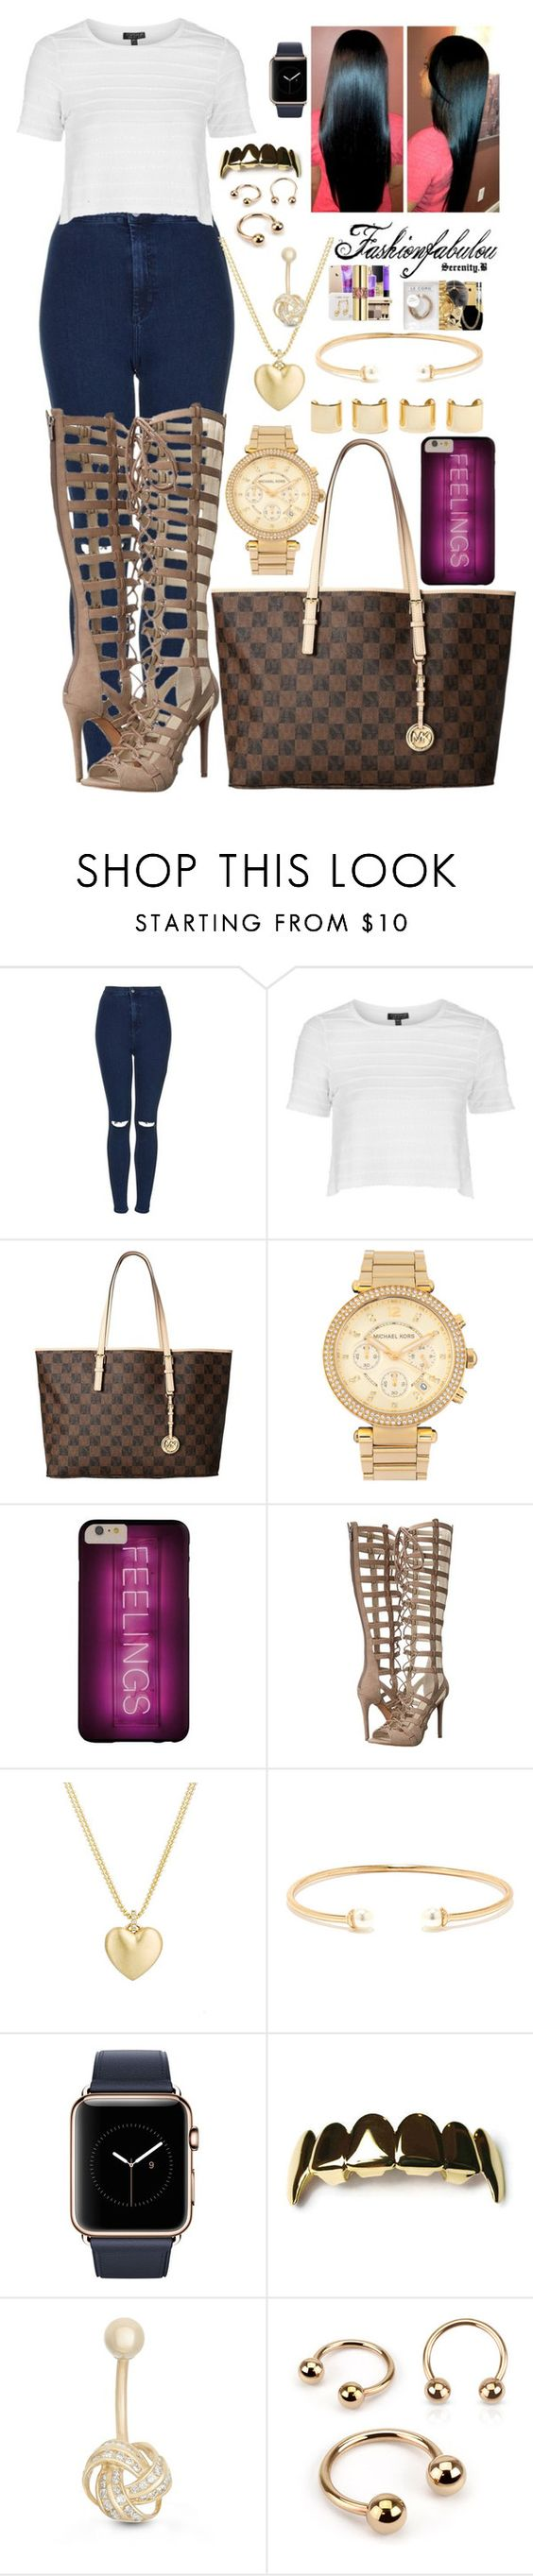 """Gold"" by fashionfabulou on Polyvore featuring Topshop, Michael Kors, Kendall + Kylie, Finn, Lulu*s, Luv Aj and Gioelli Designs"